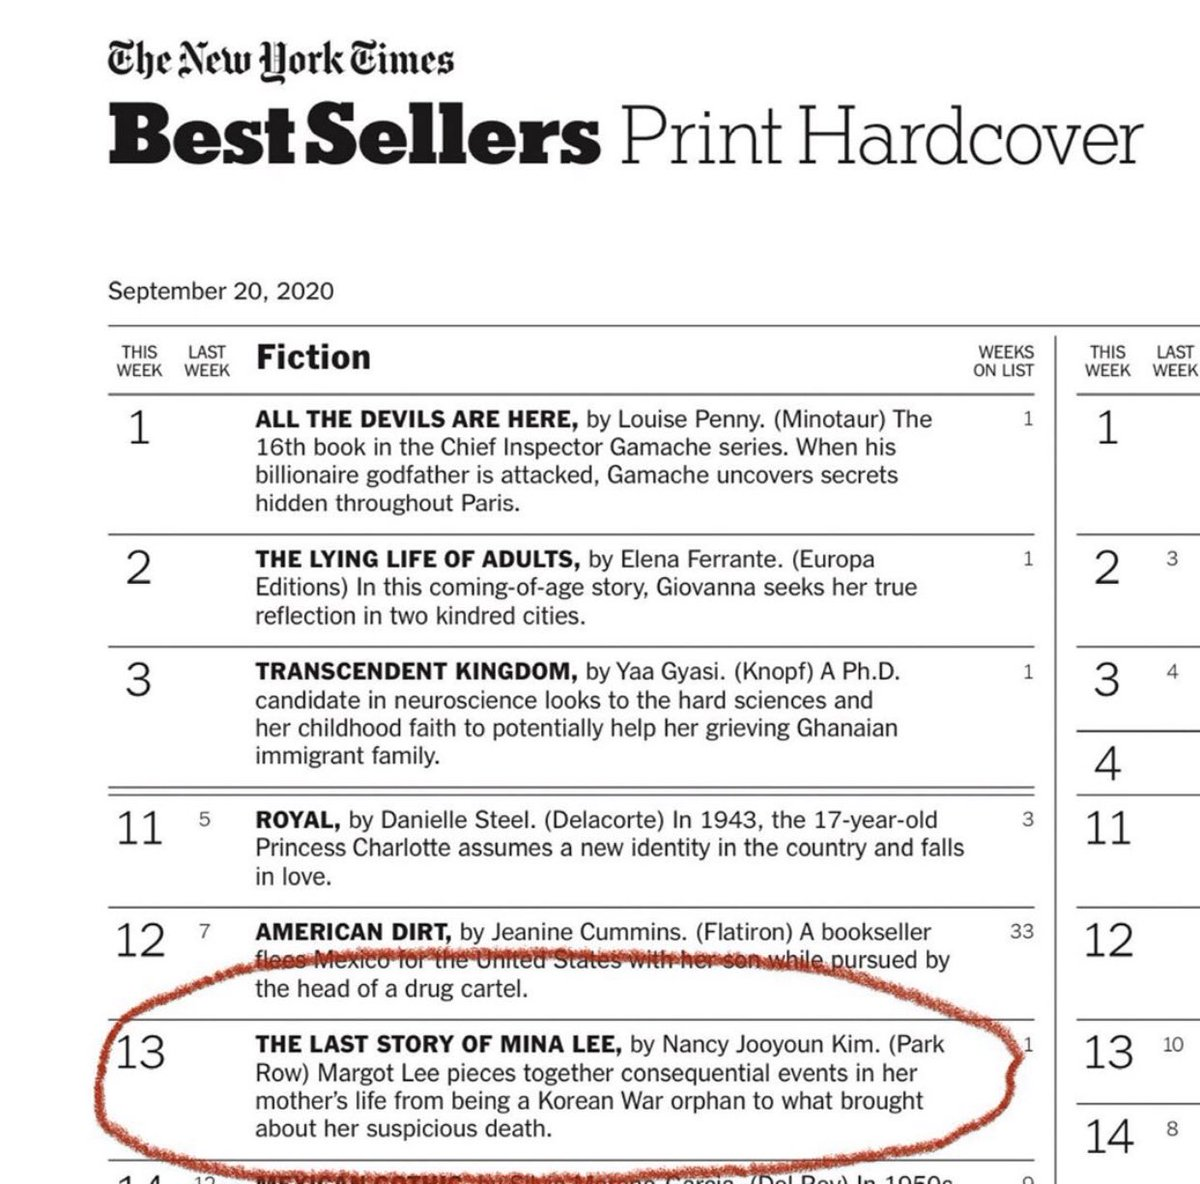 ✨MAJOR CONGRATS✨ to @njooyounkim on hitting the New York Times hardcover bestseller list for #TheLastStoryOfMinaLee!!!!!!!!!!!!! 🎉 🥂 A @ReesesBookClub pick, a @bookofthemonth pick, and now a NYT BESTSELLER?! Please tell me I'm not dreaming 😭😭😭🔥🔥🔥 https://t.co/e5N9q7TOoh